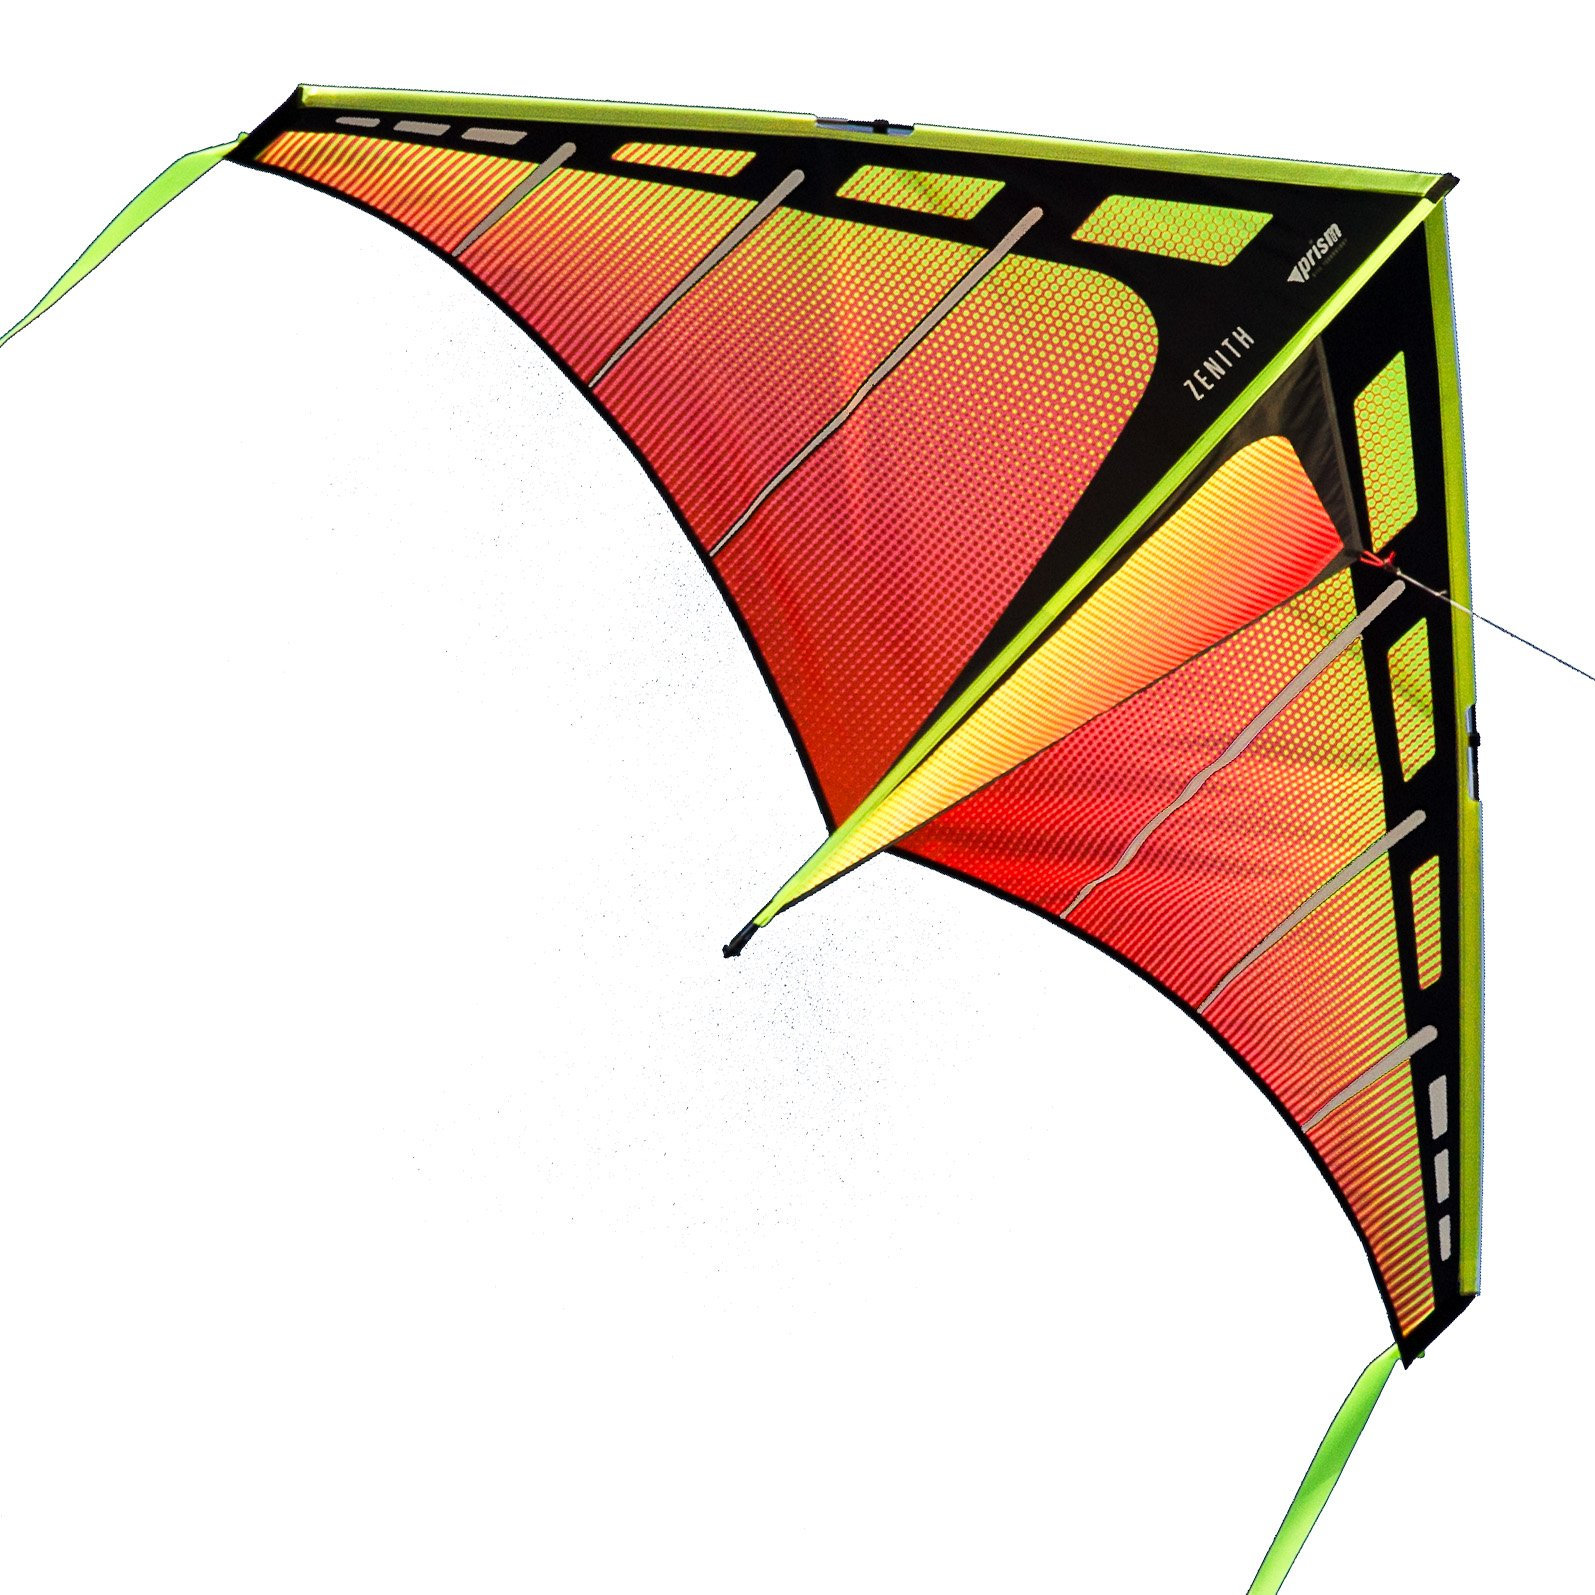 Prism Kite Technology 5ZENY Zenith 5 Single Line Delta Kite, Infrared by Prism Kite Technology